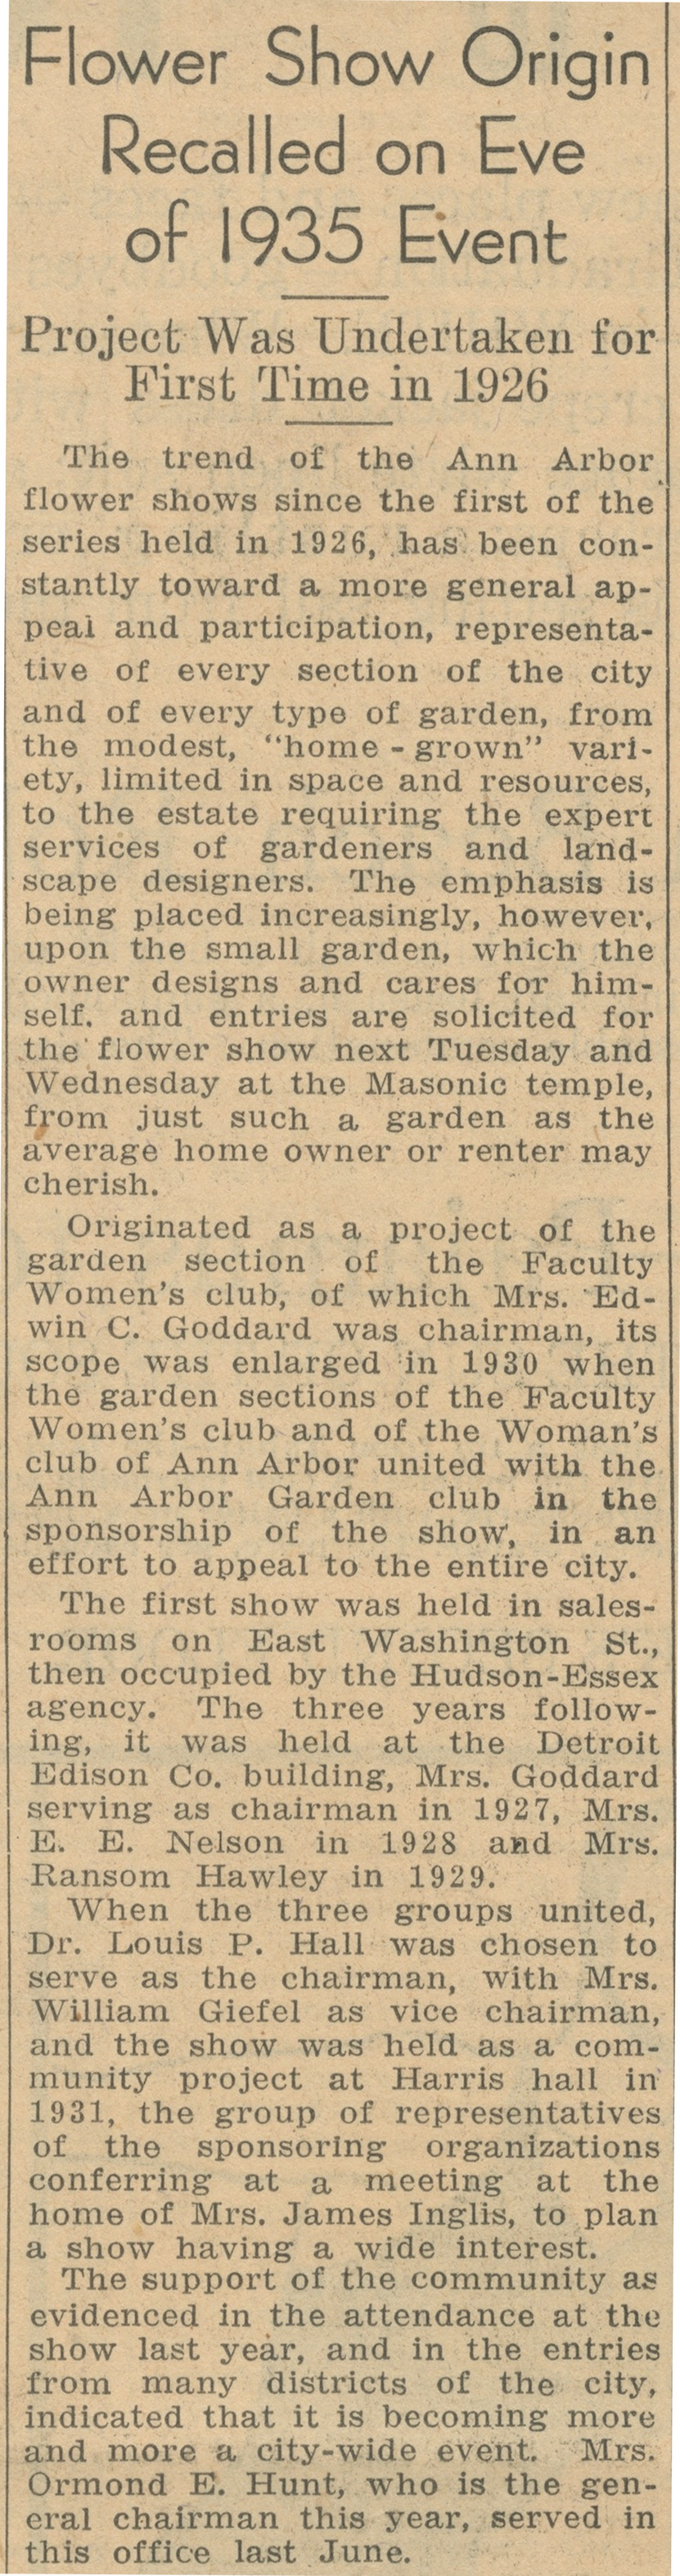 Flower Show Origin Recalled On Eve Of 1935 Event - Project Was First Undertaken In 1926 image